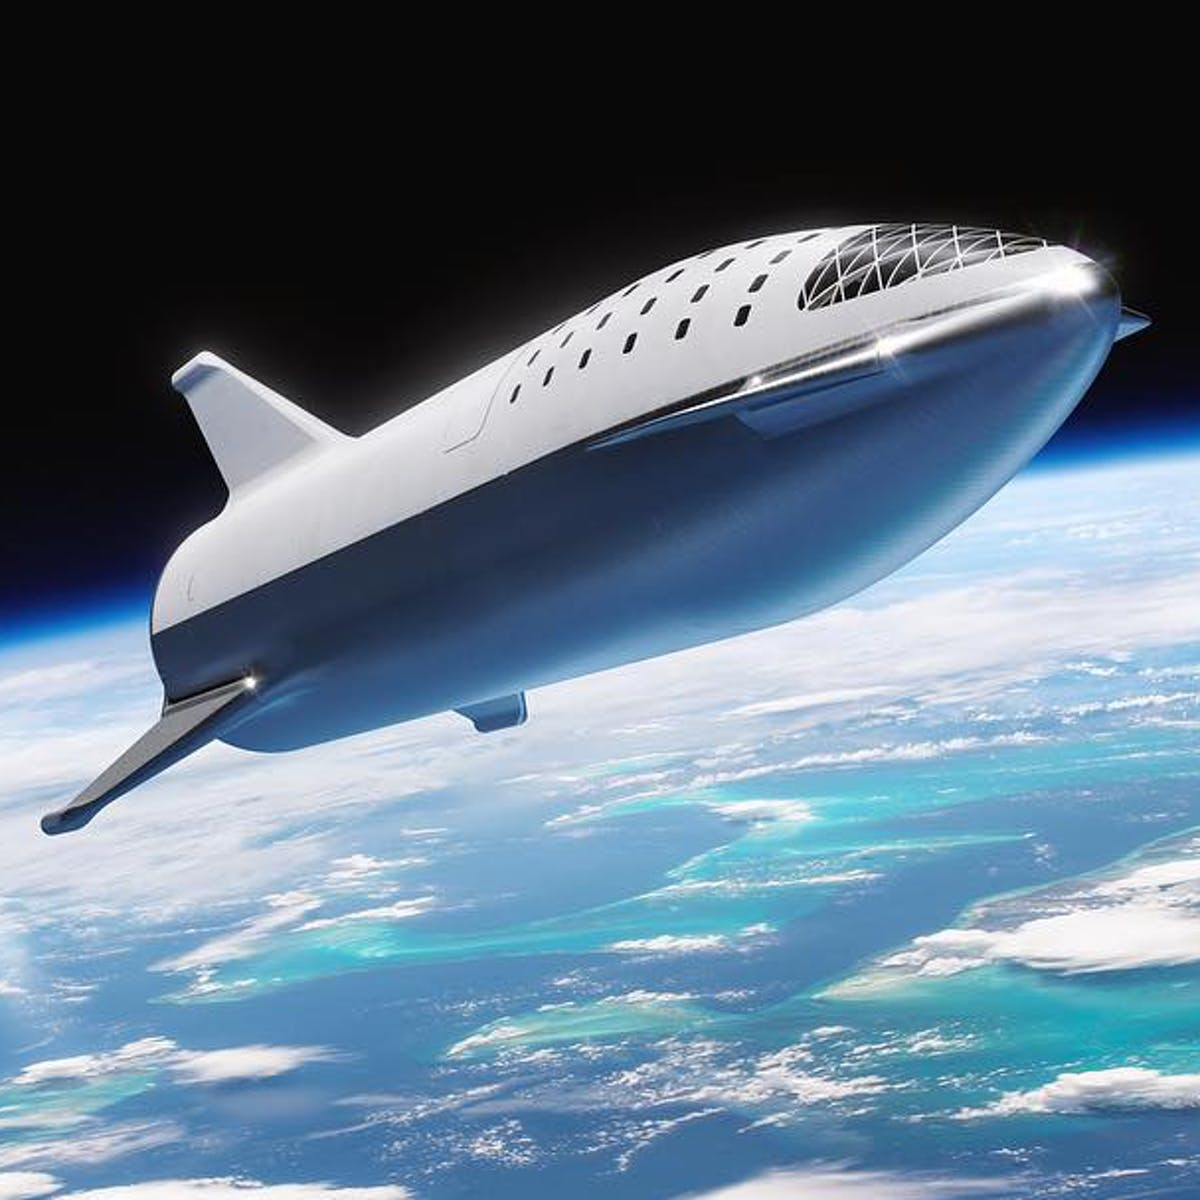 Elon Musk Says SpaceX's Starship Is Getting Ready to Fly